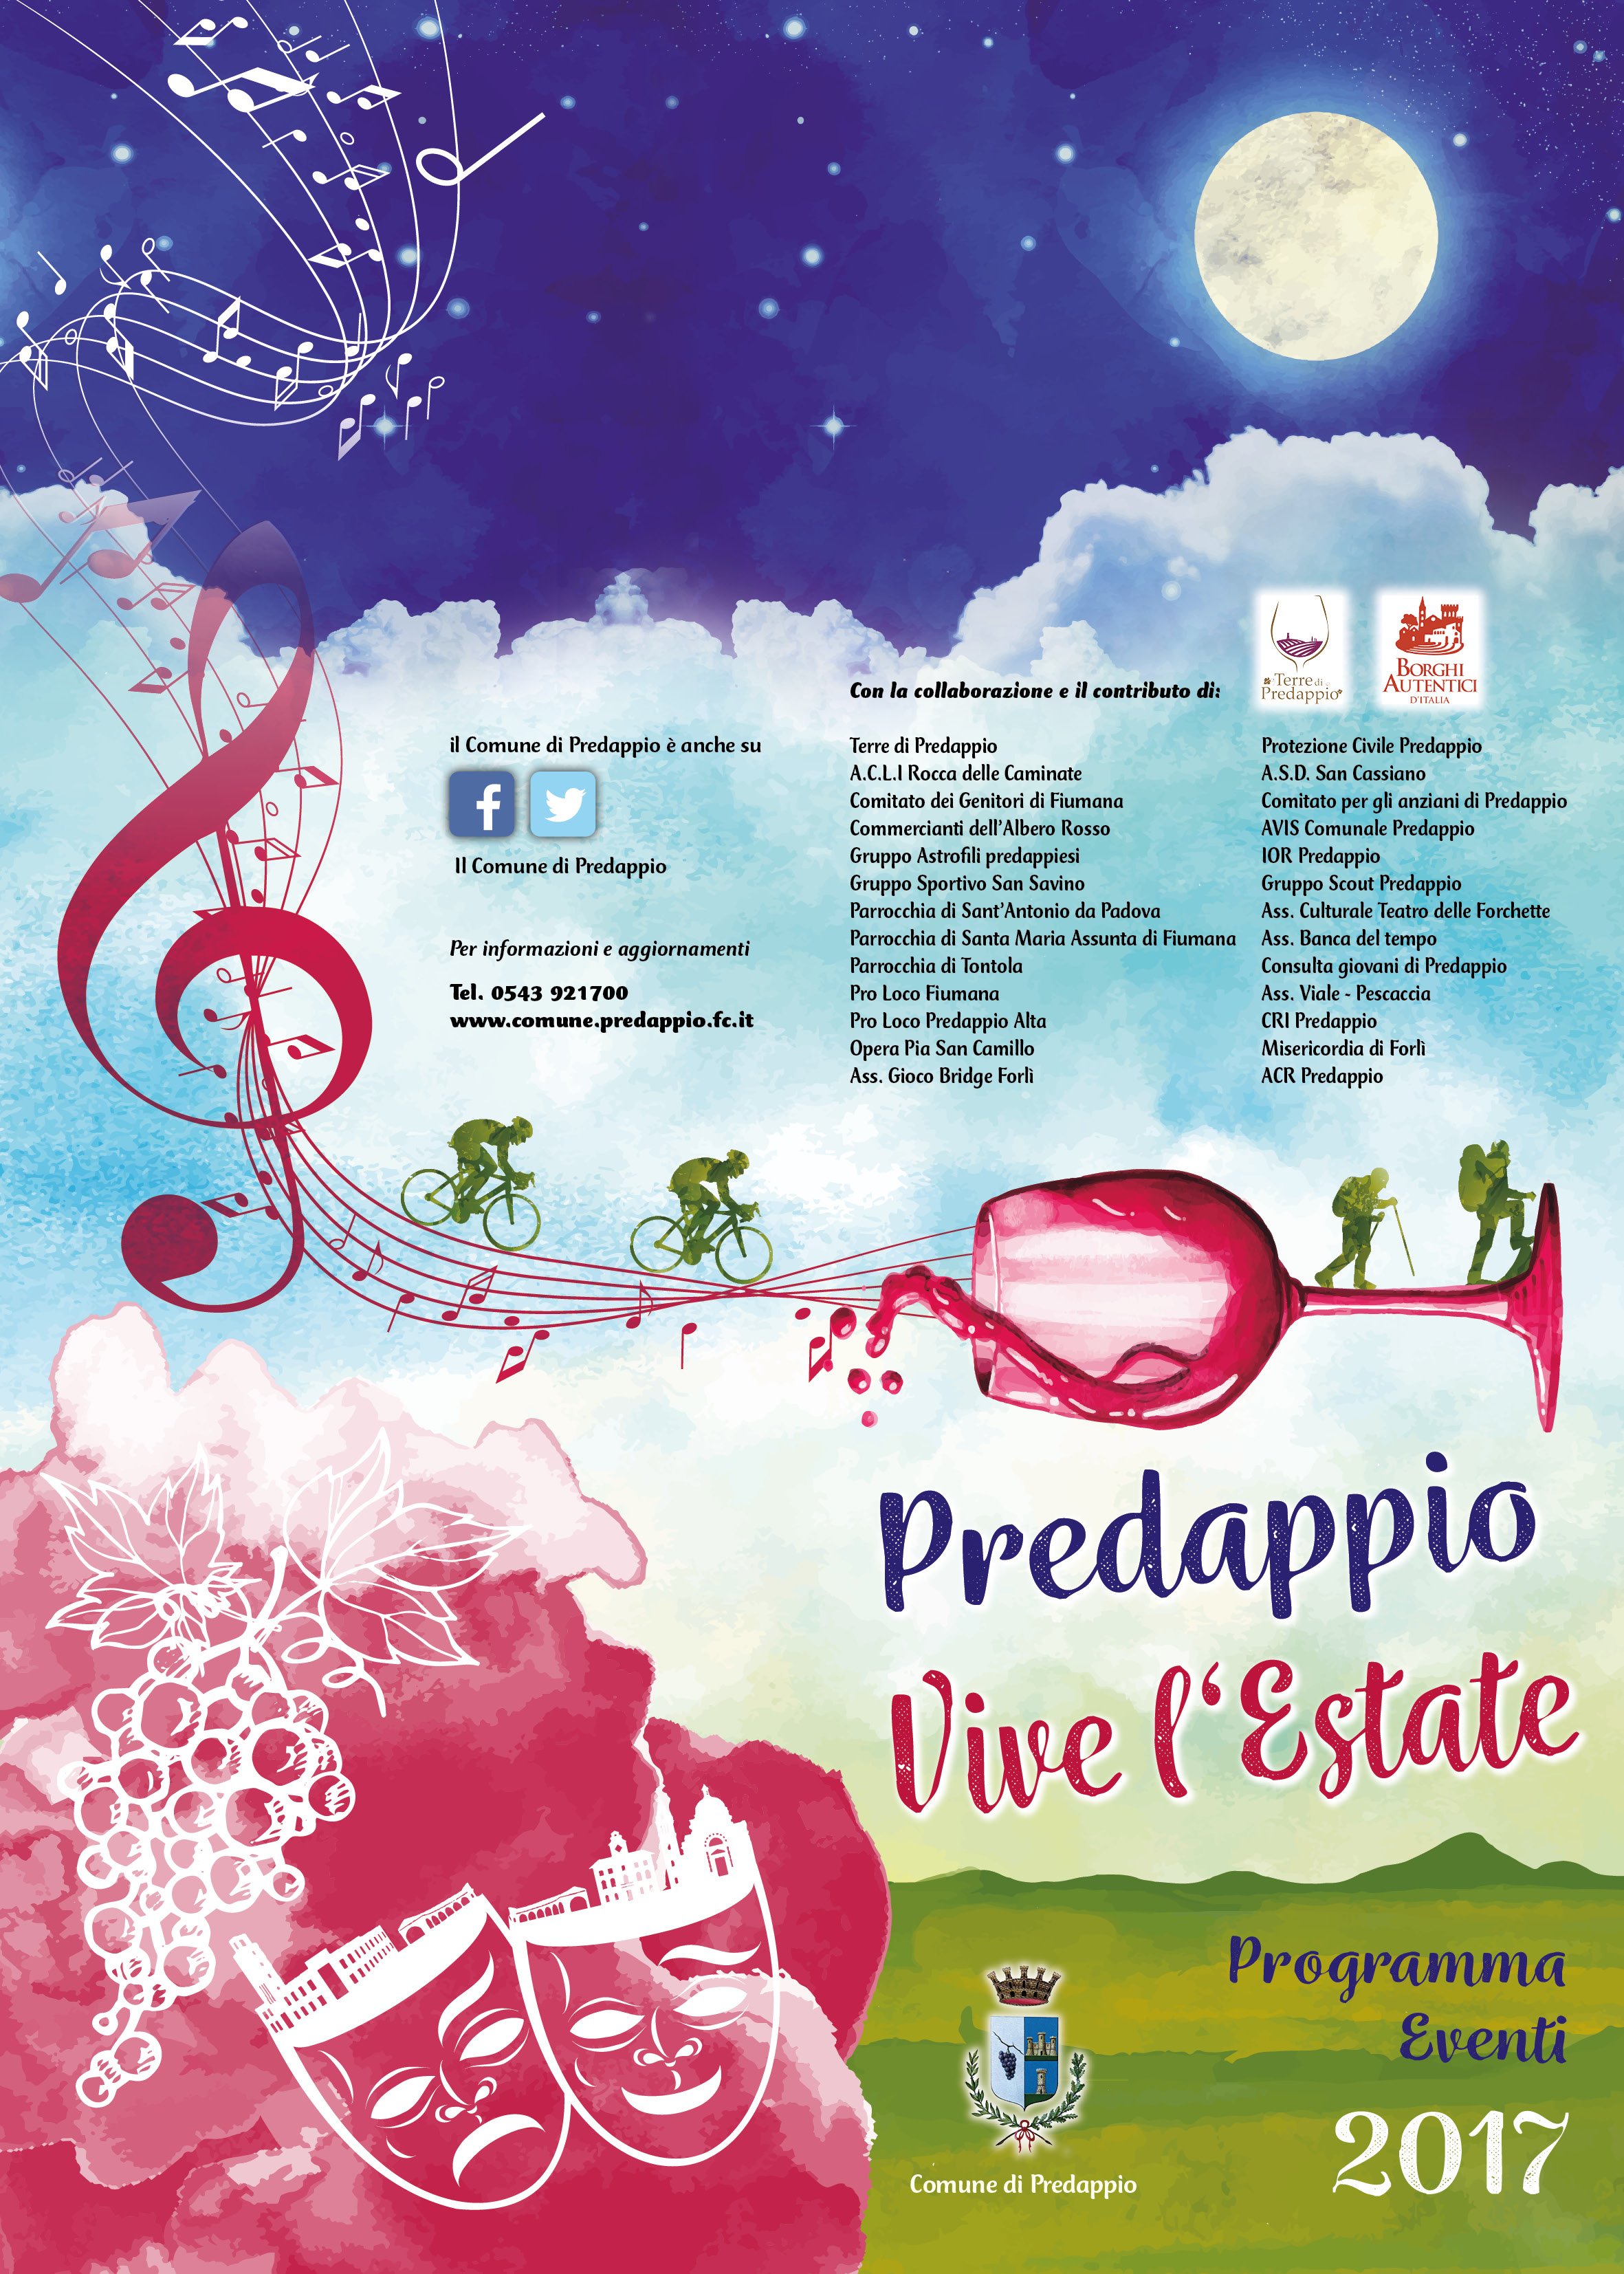 Predappio Estate Pieg 2017